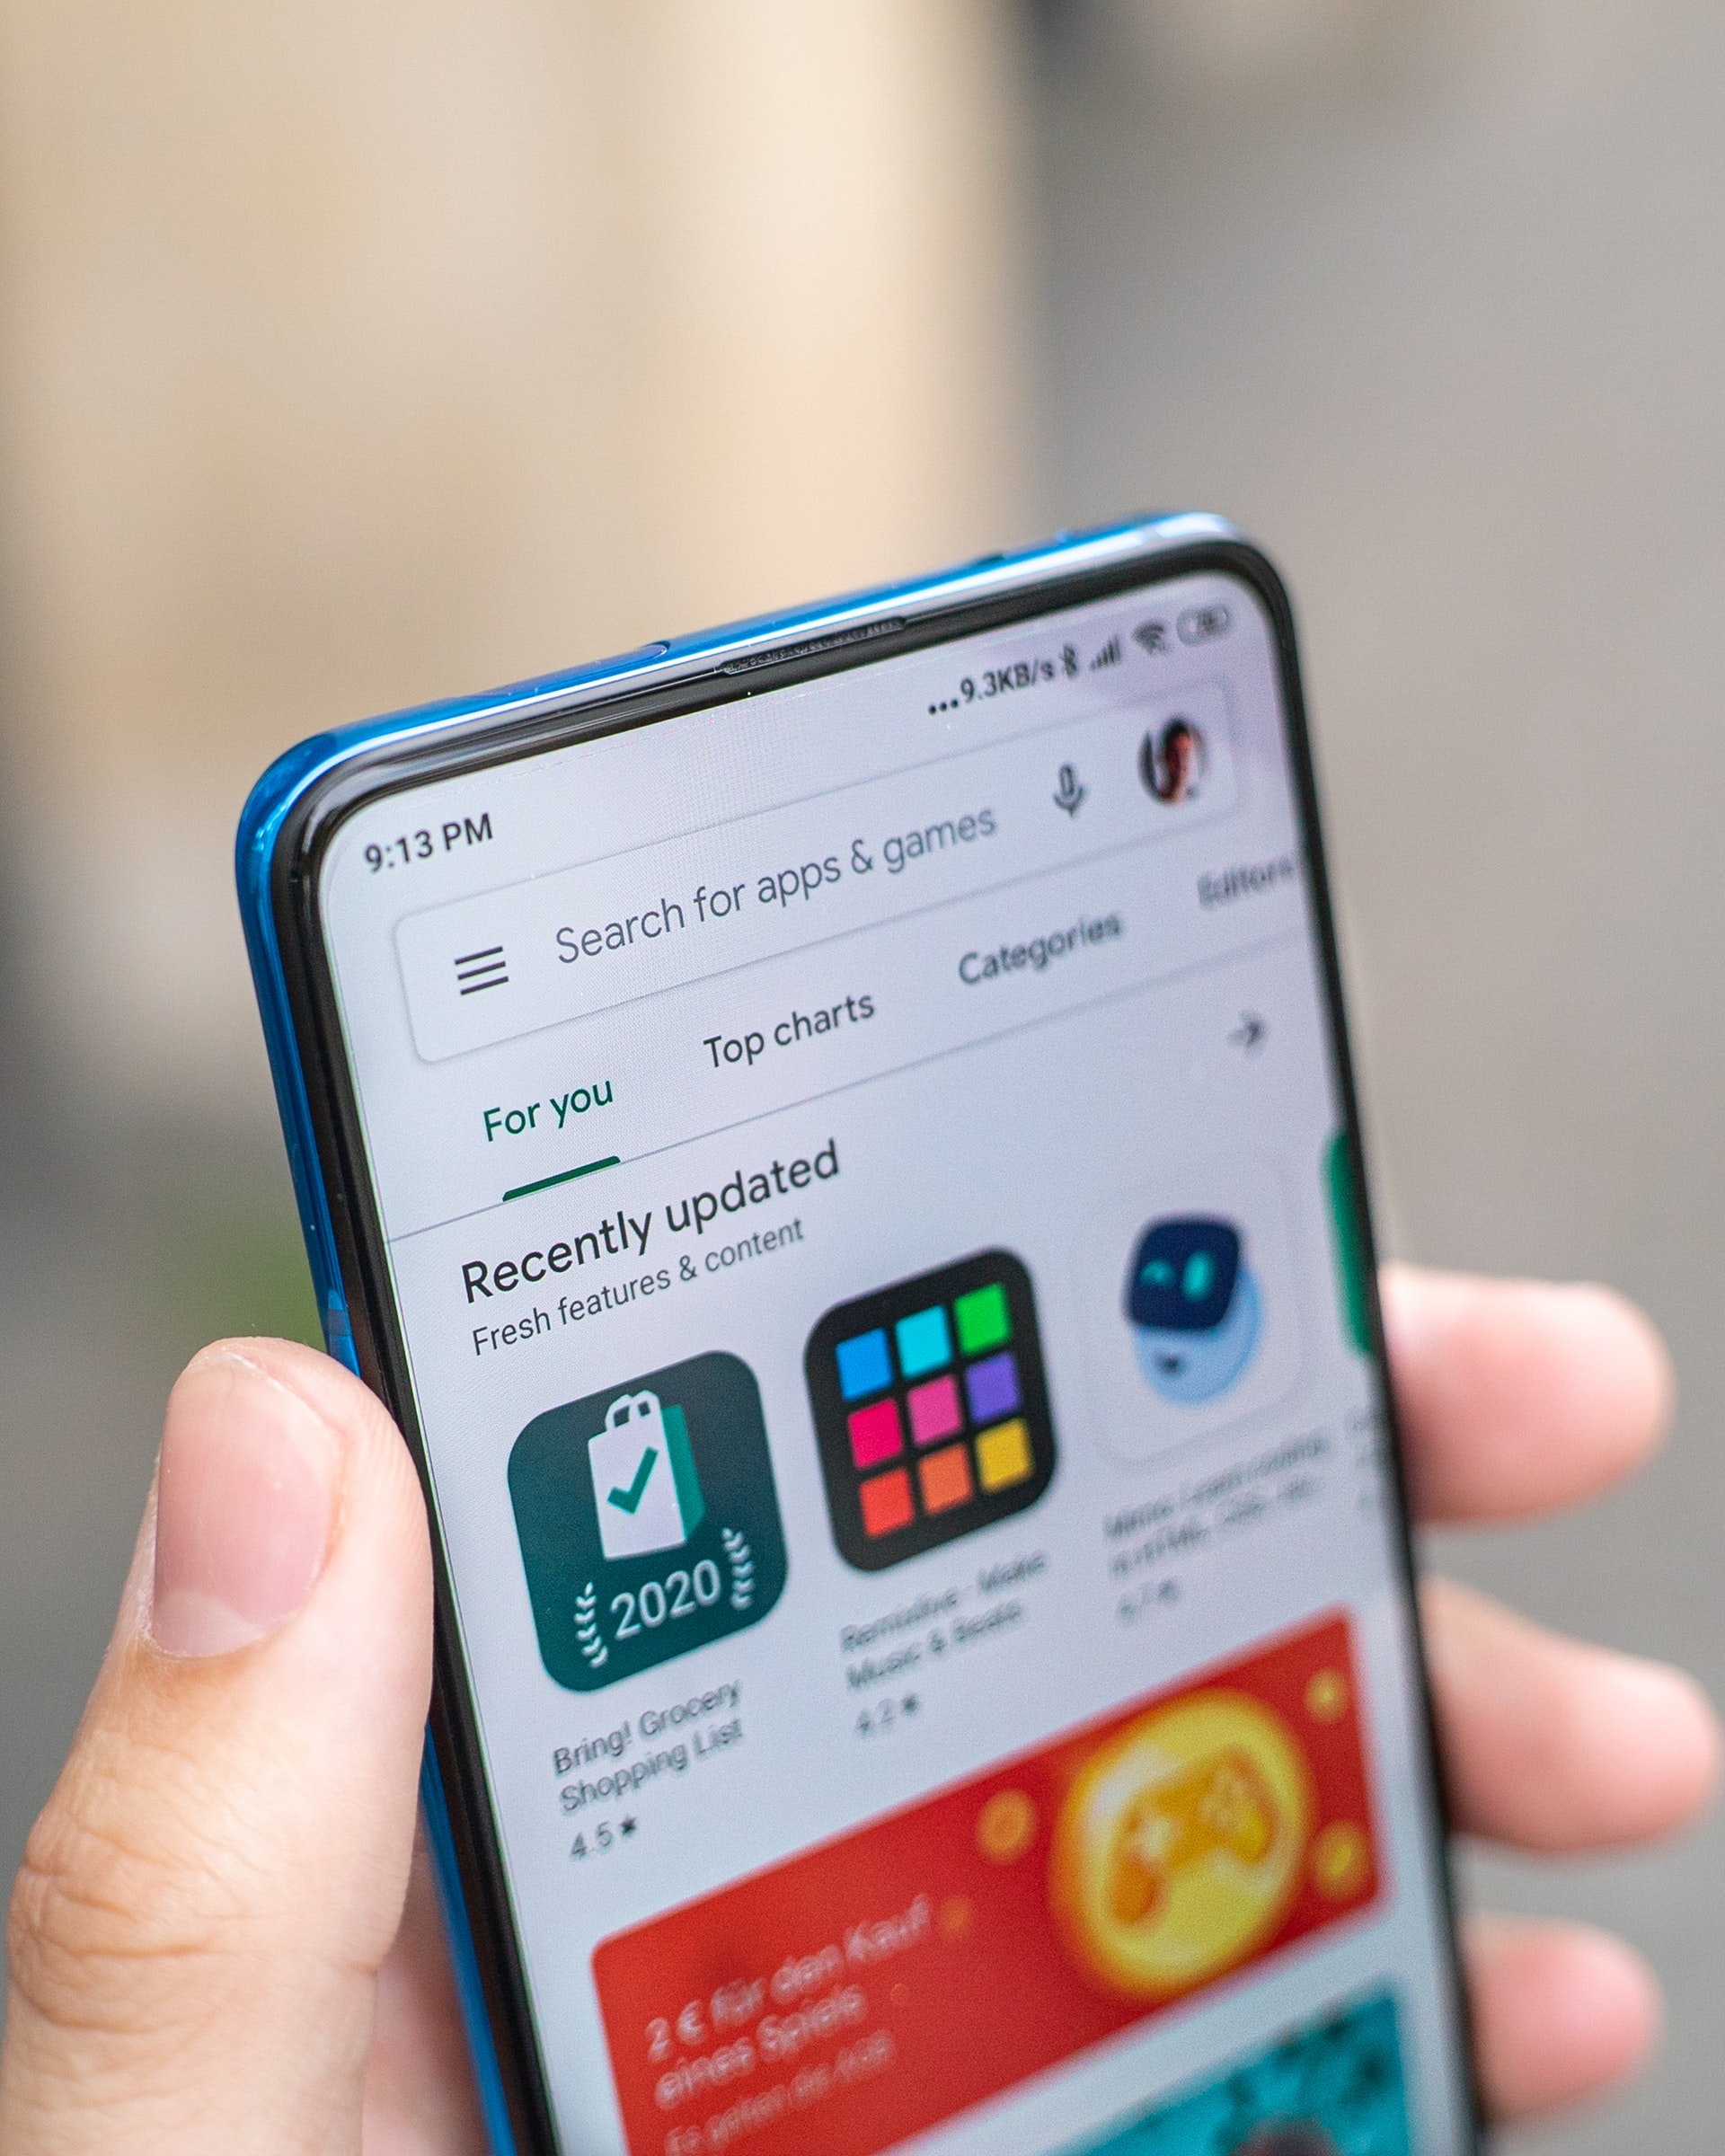 Google Play Hit 28.3bn Downloads in Q3 2020, 3x More than App Store Brandspurng1